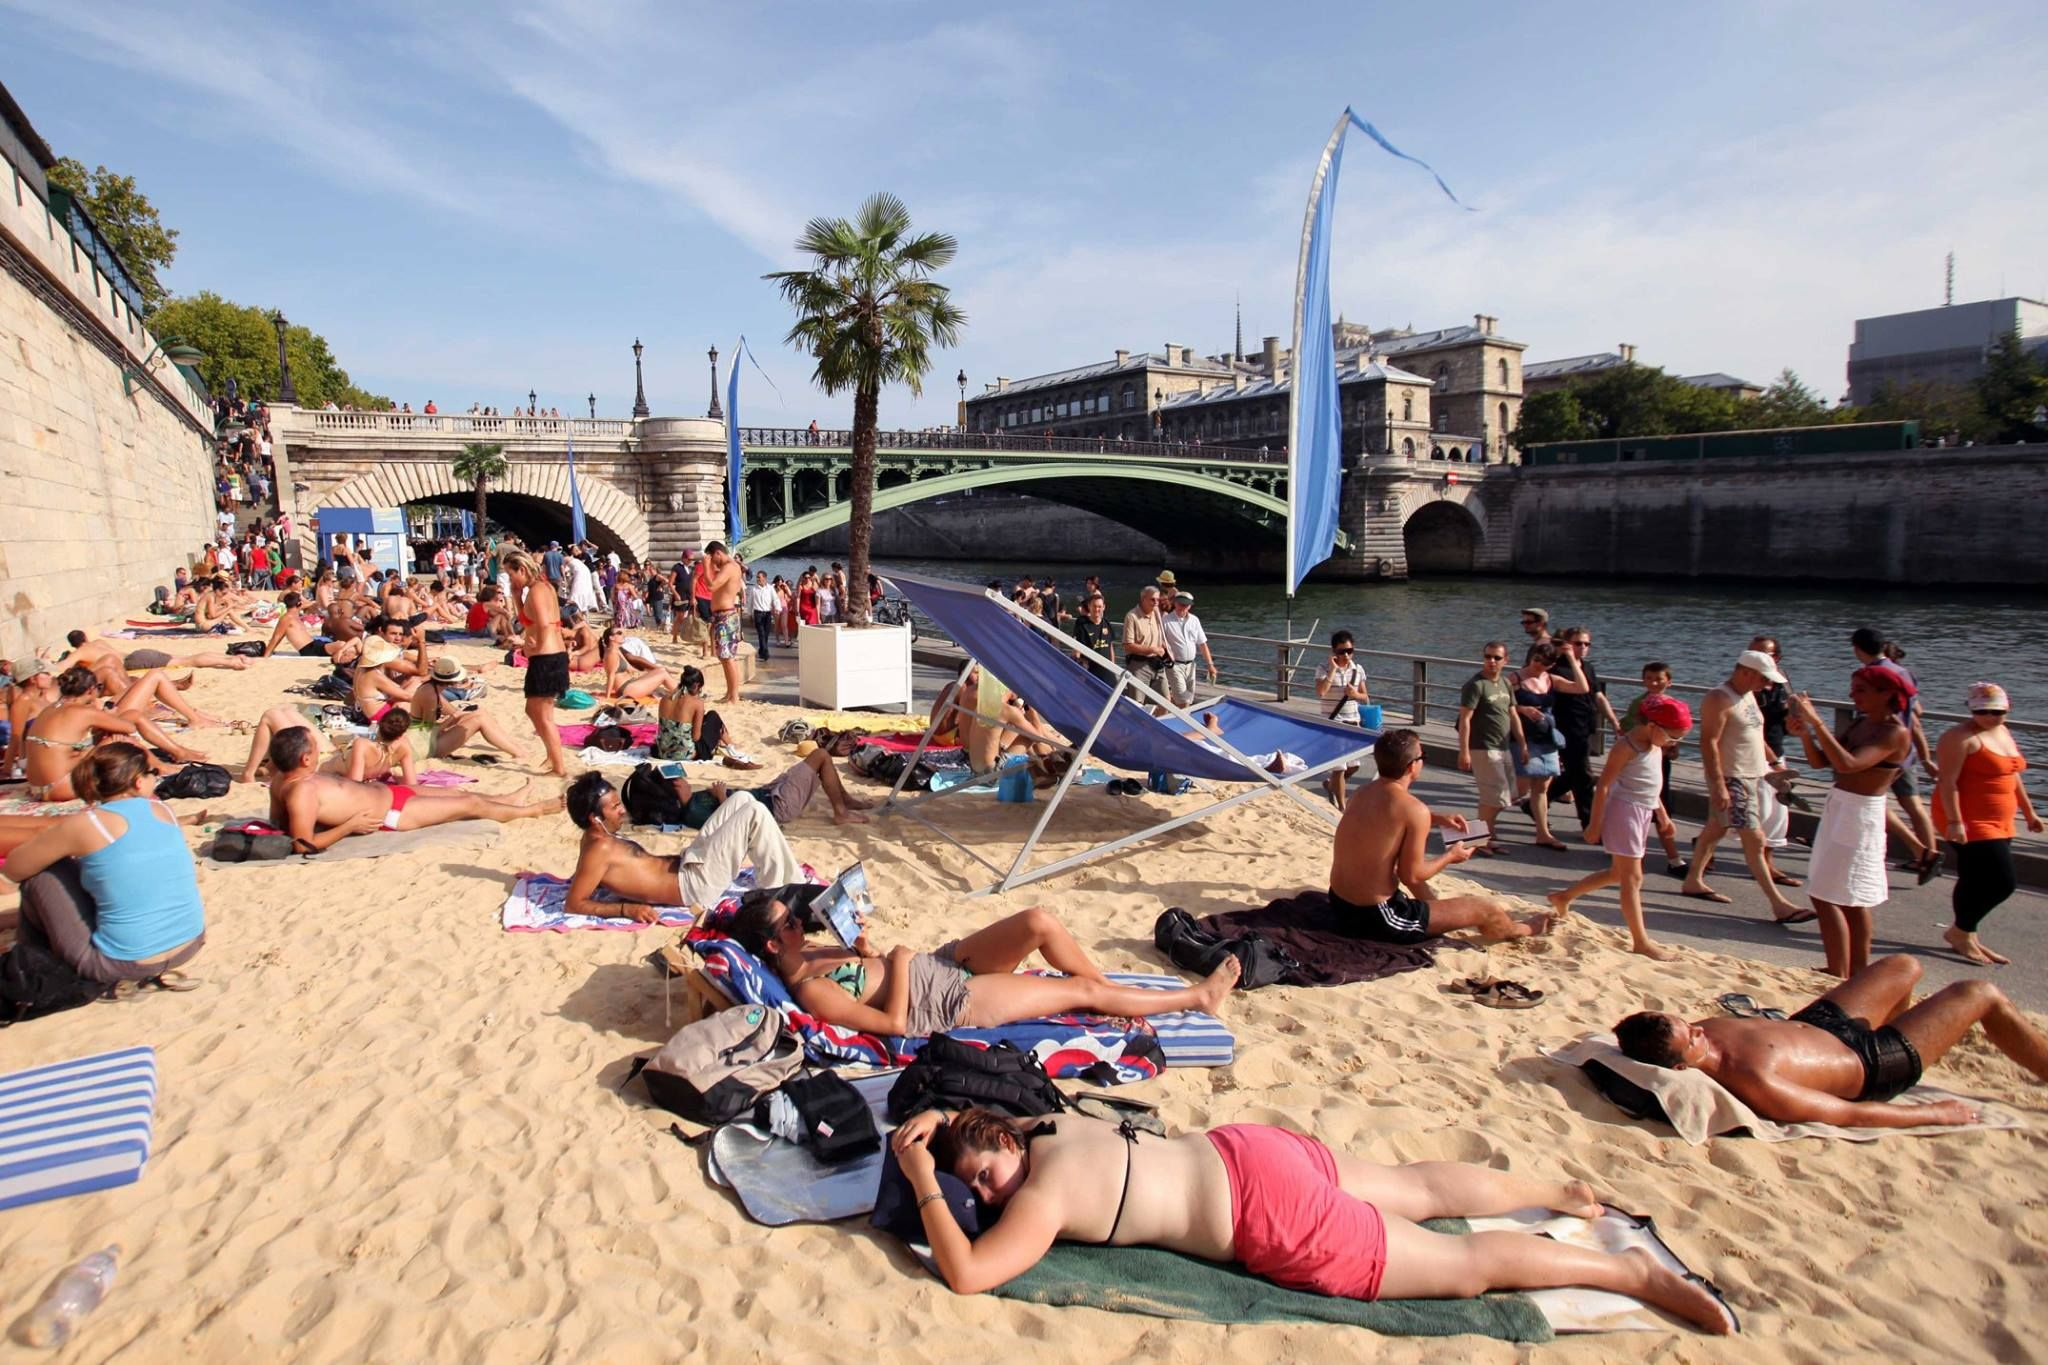 Rendez-vous in Paris this summer to celebrate the 15th edition of Paris Plages!